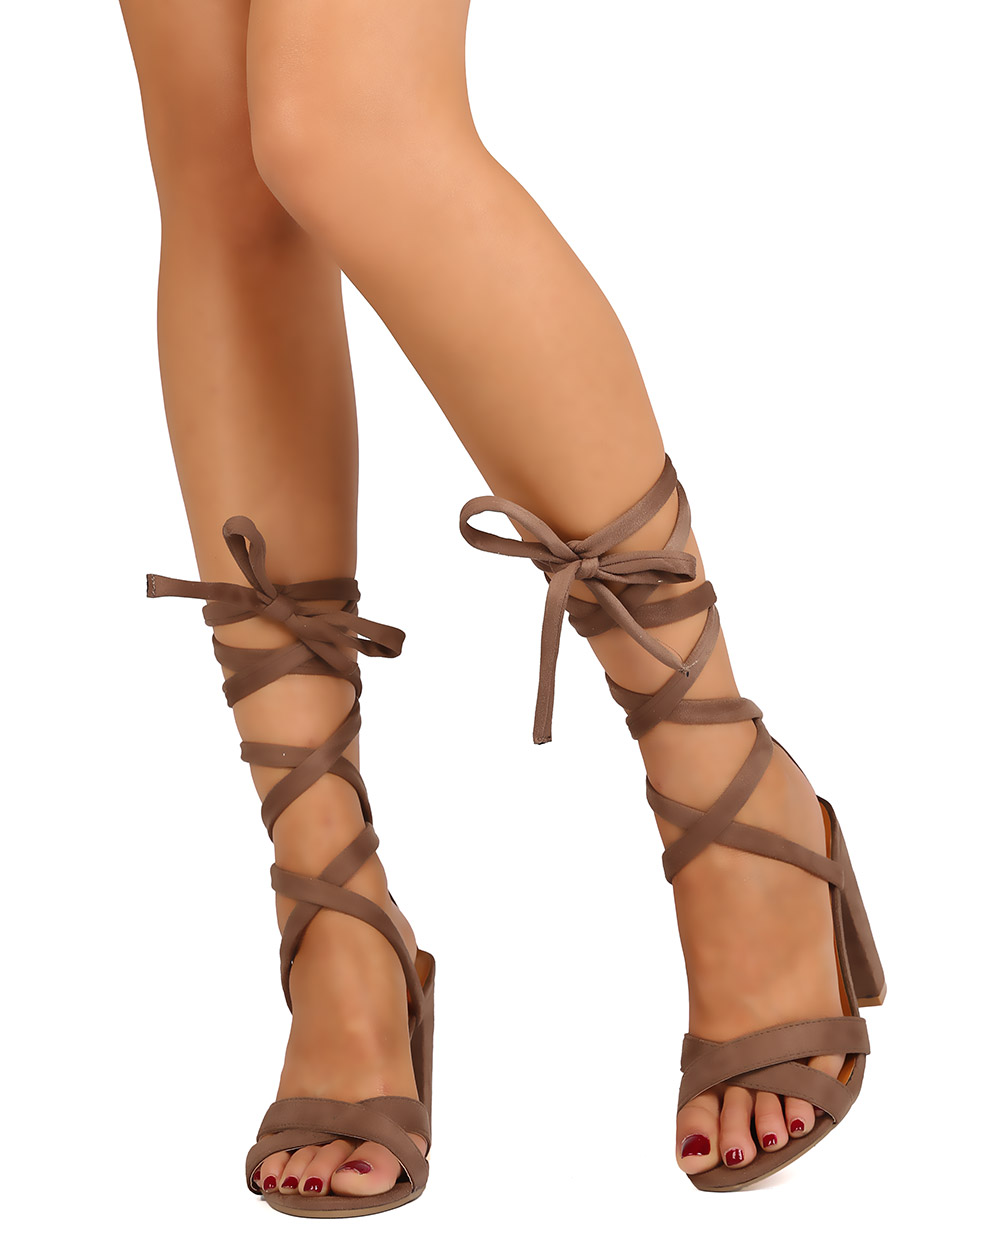 b2858e89250 Betani - Betani FC53 Women Faux Suede Open Toe Cross Band Ankle Wrap Block  Heel Sandal - Walmart.com